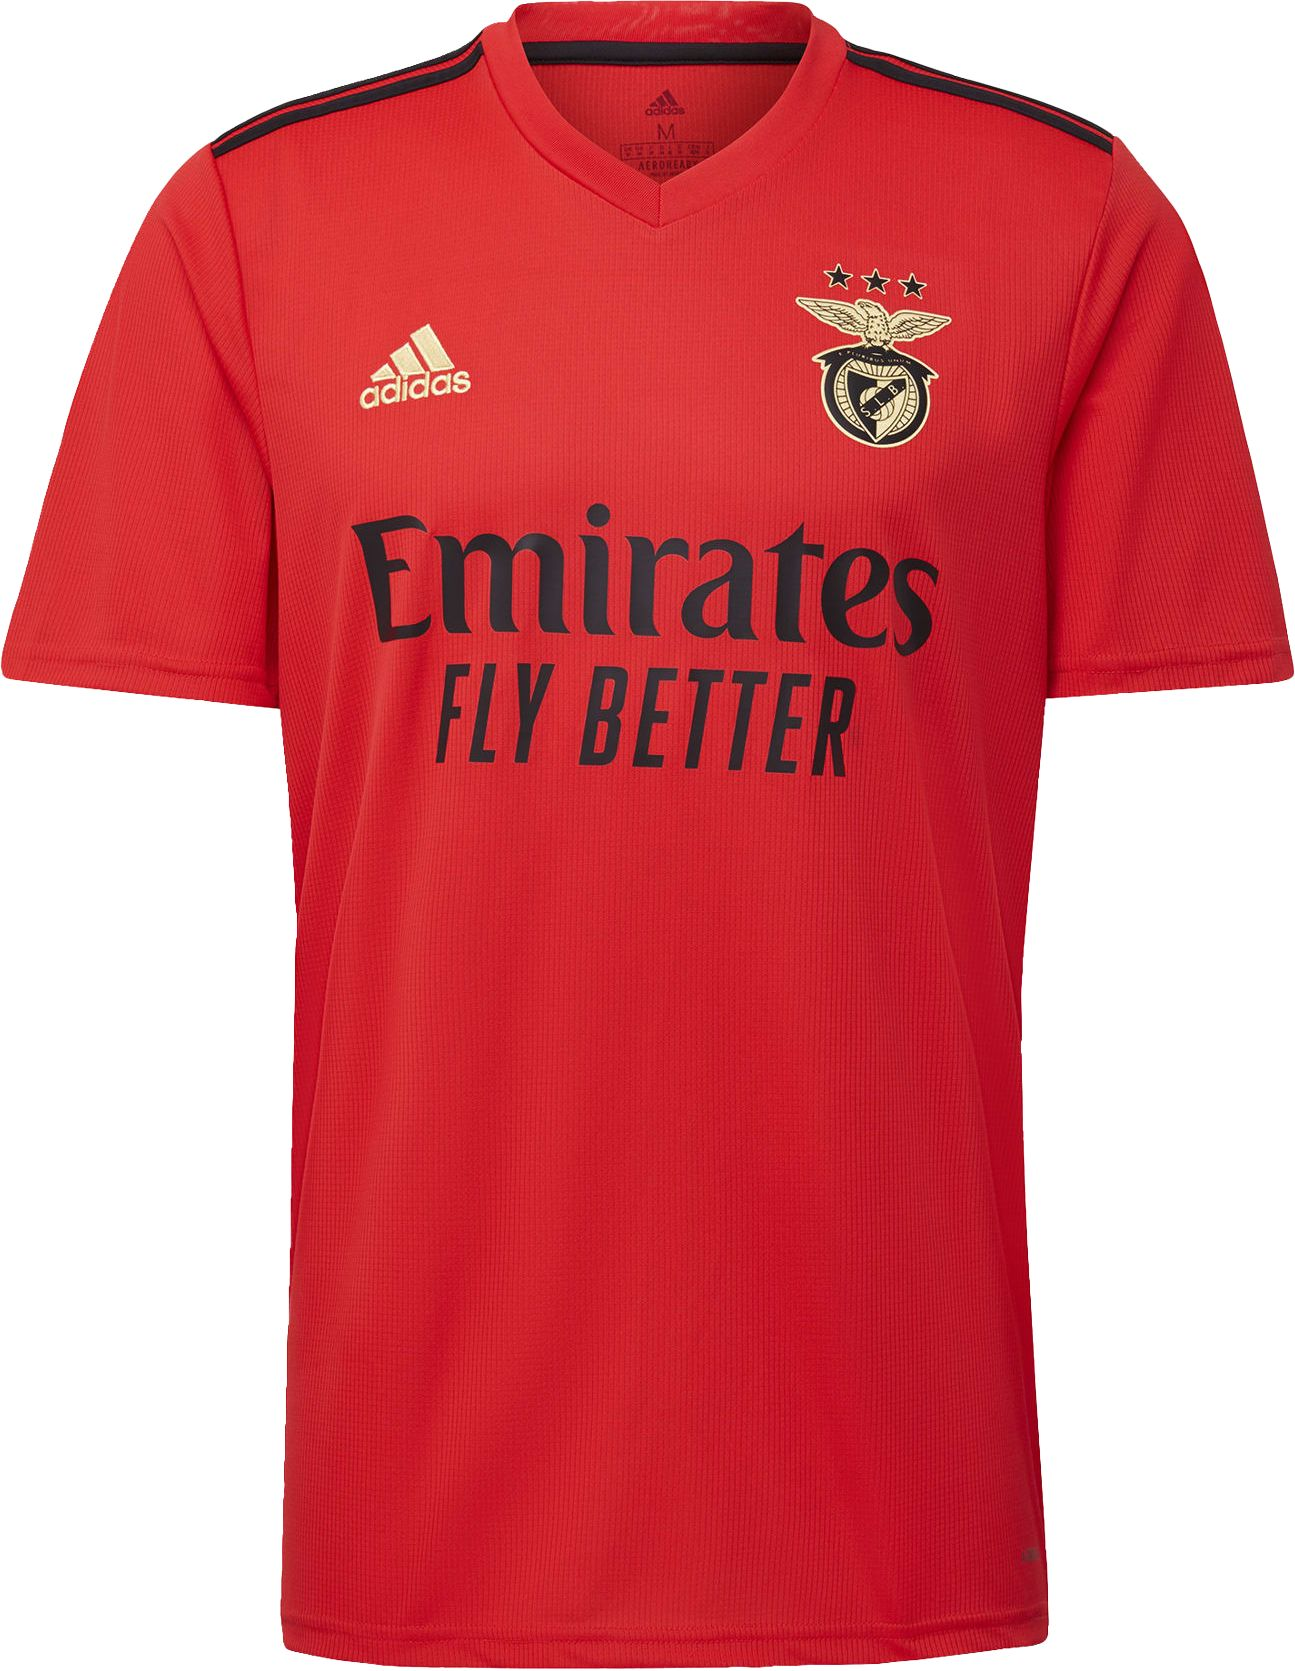 355696101104, Benfica Home Jersey, ADIDAS, Detail